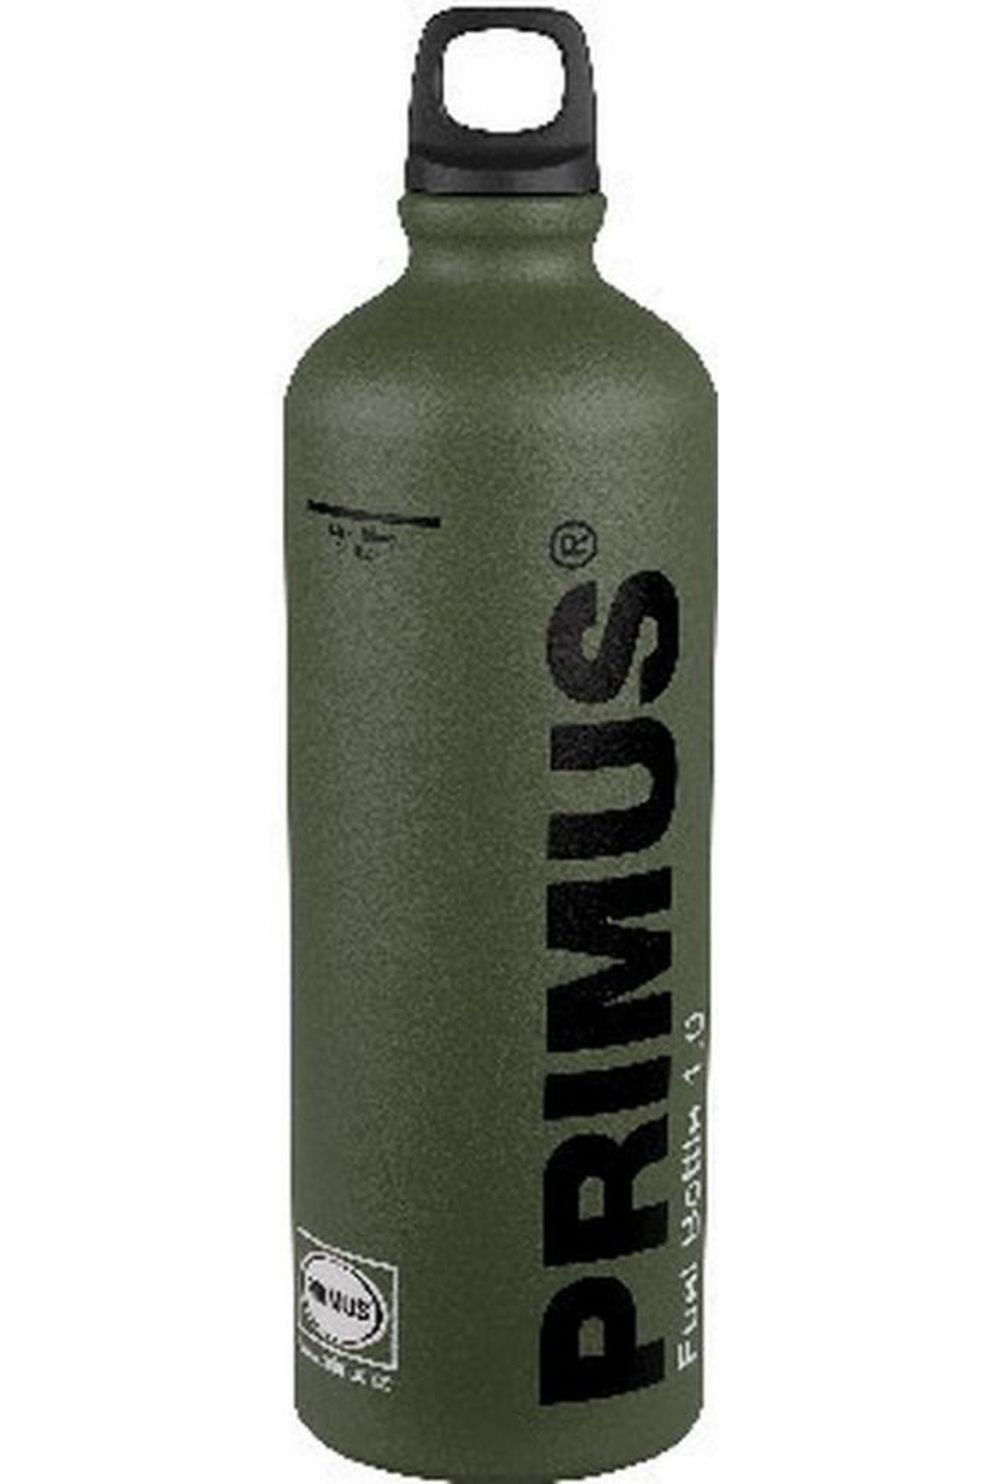 Primus Brandstoffles Fuel Bottle 1.0L (Green) - Groen